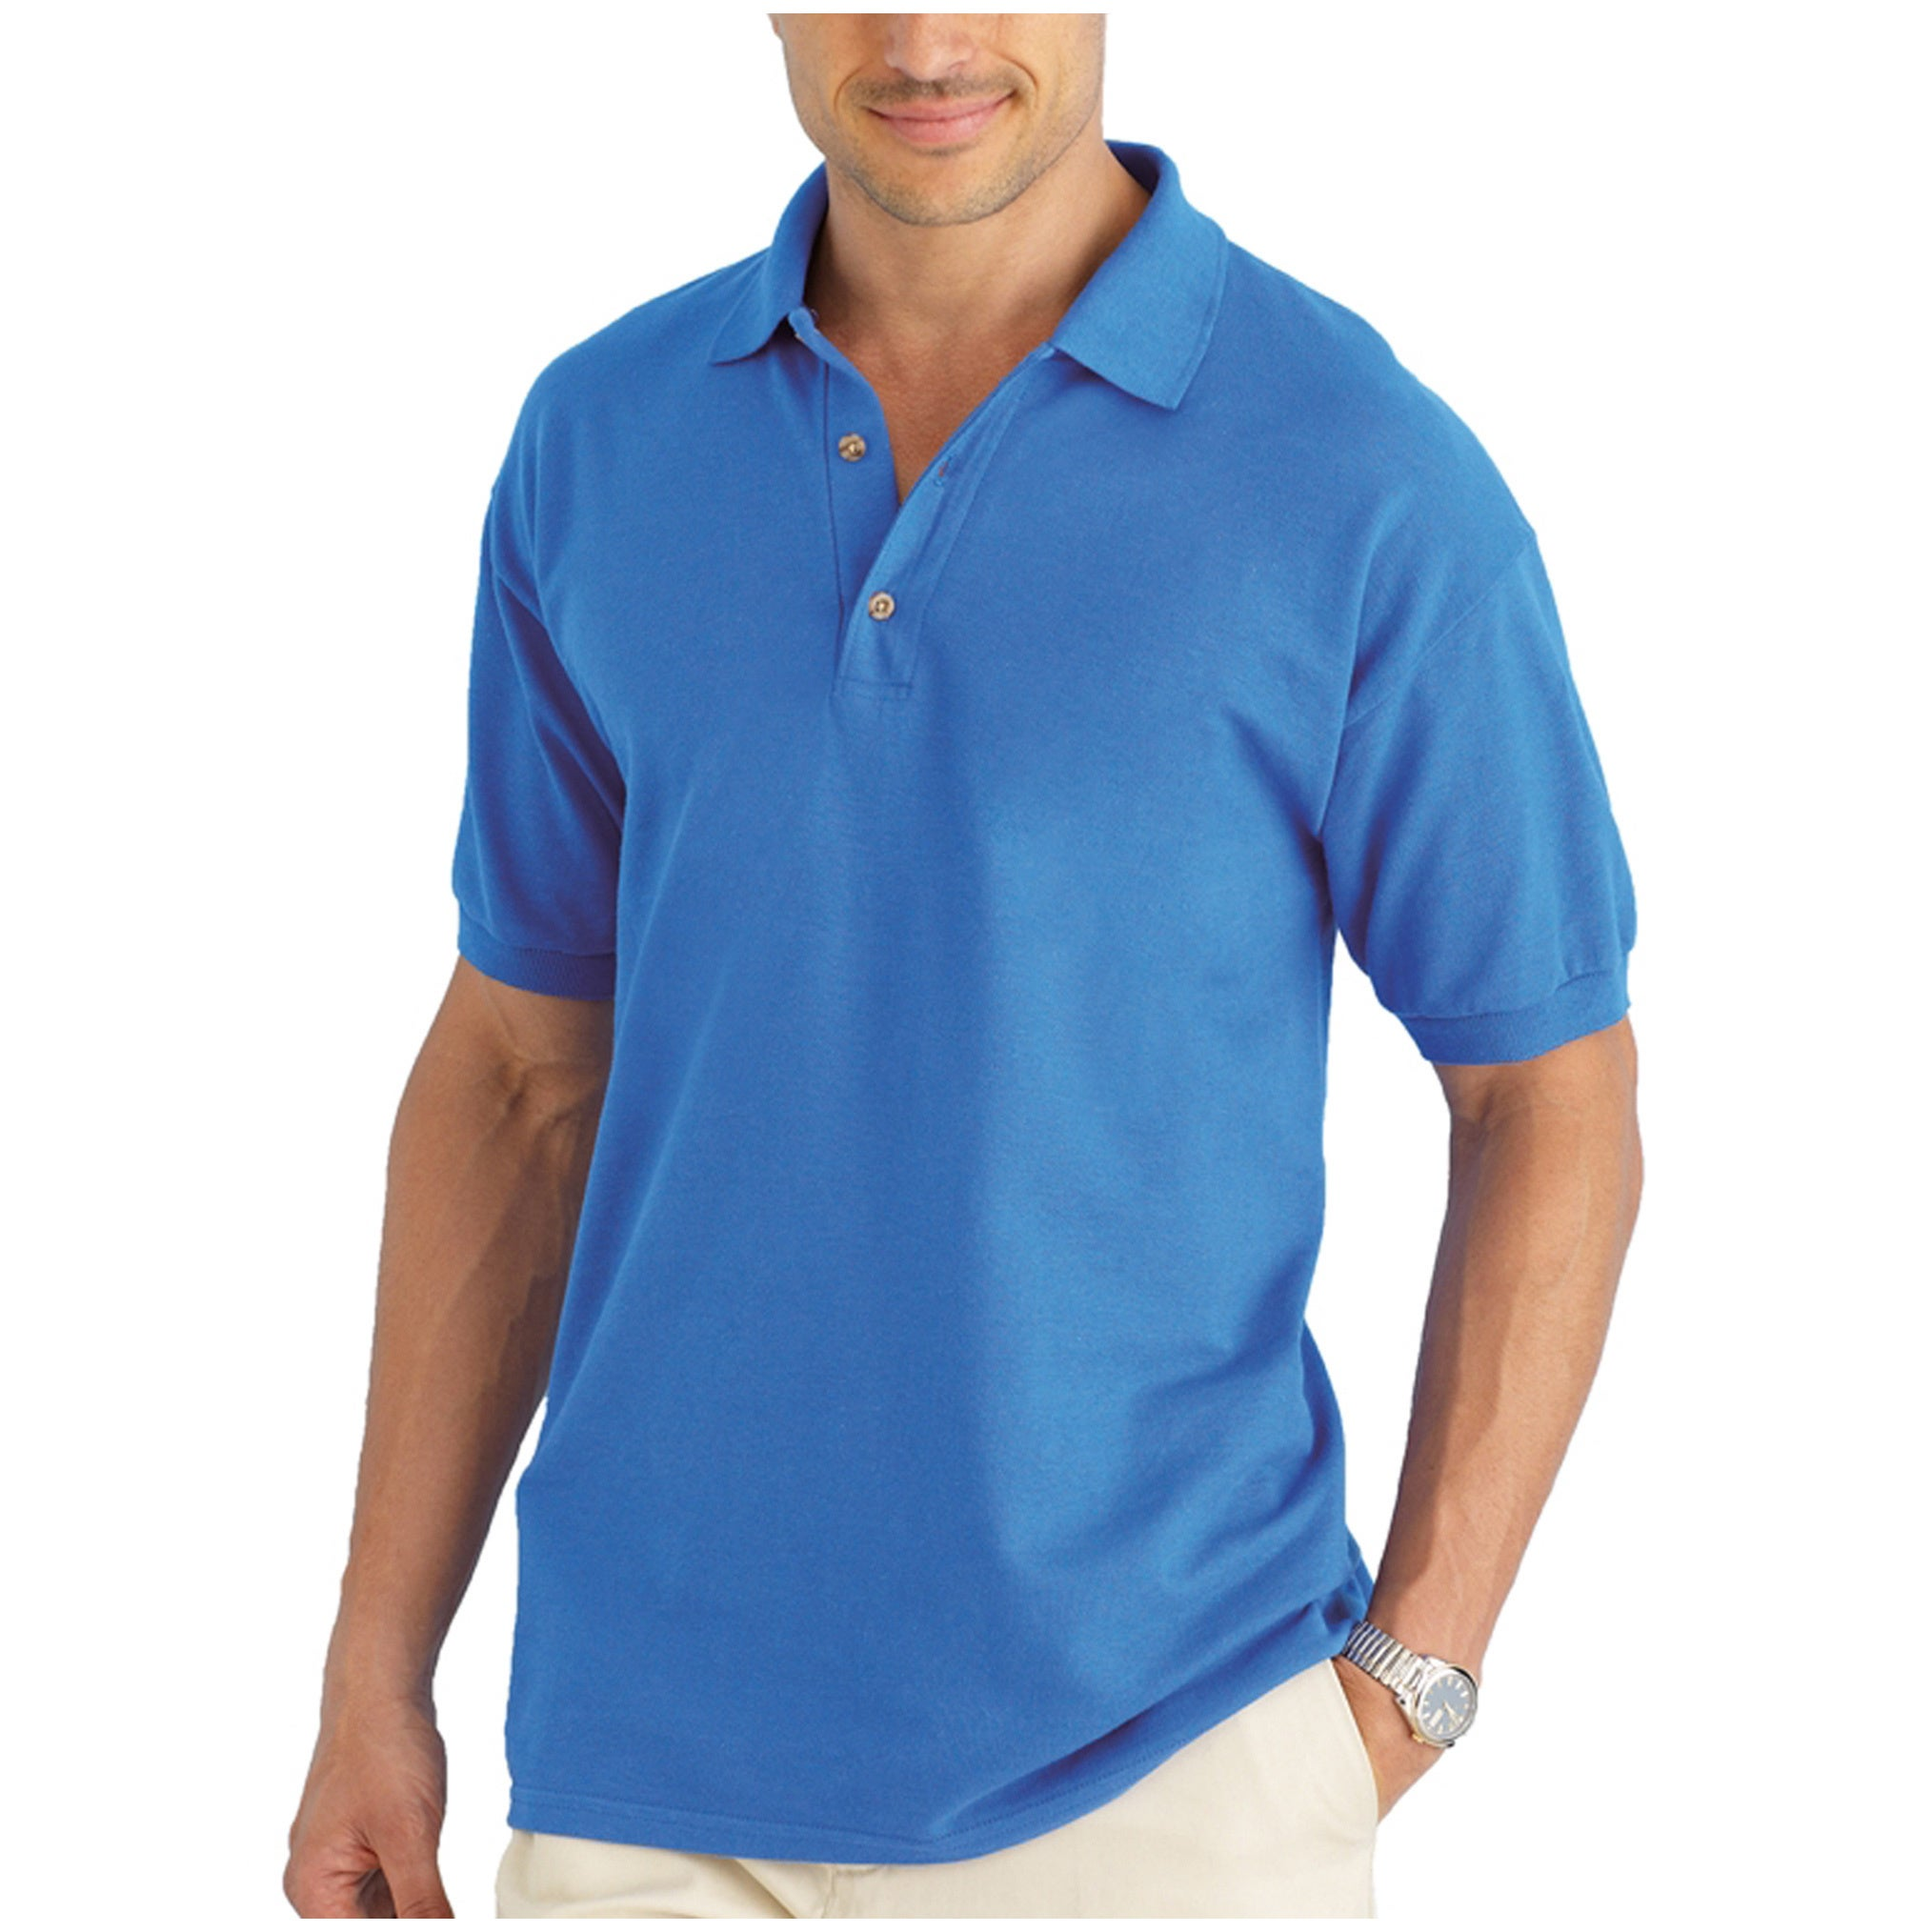 Shop Men's Cotton Short Sleeve Polo Shirt - On Sale - Overstock - 7411787